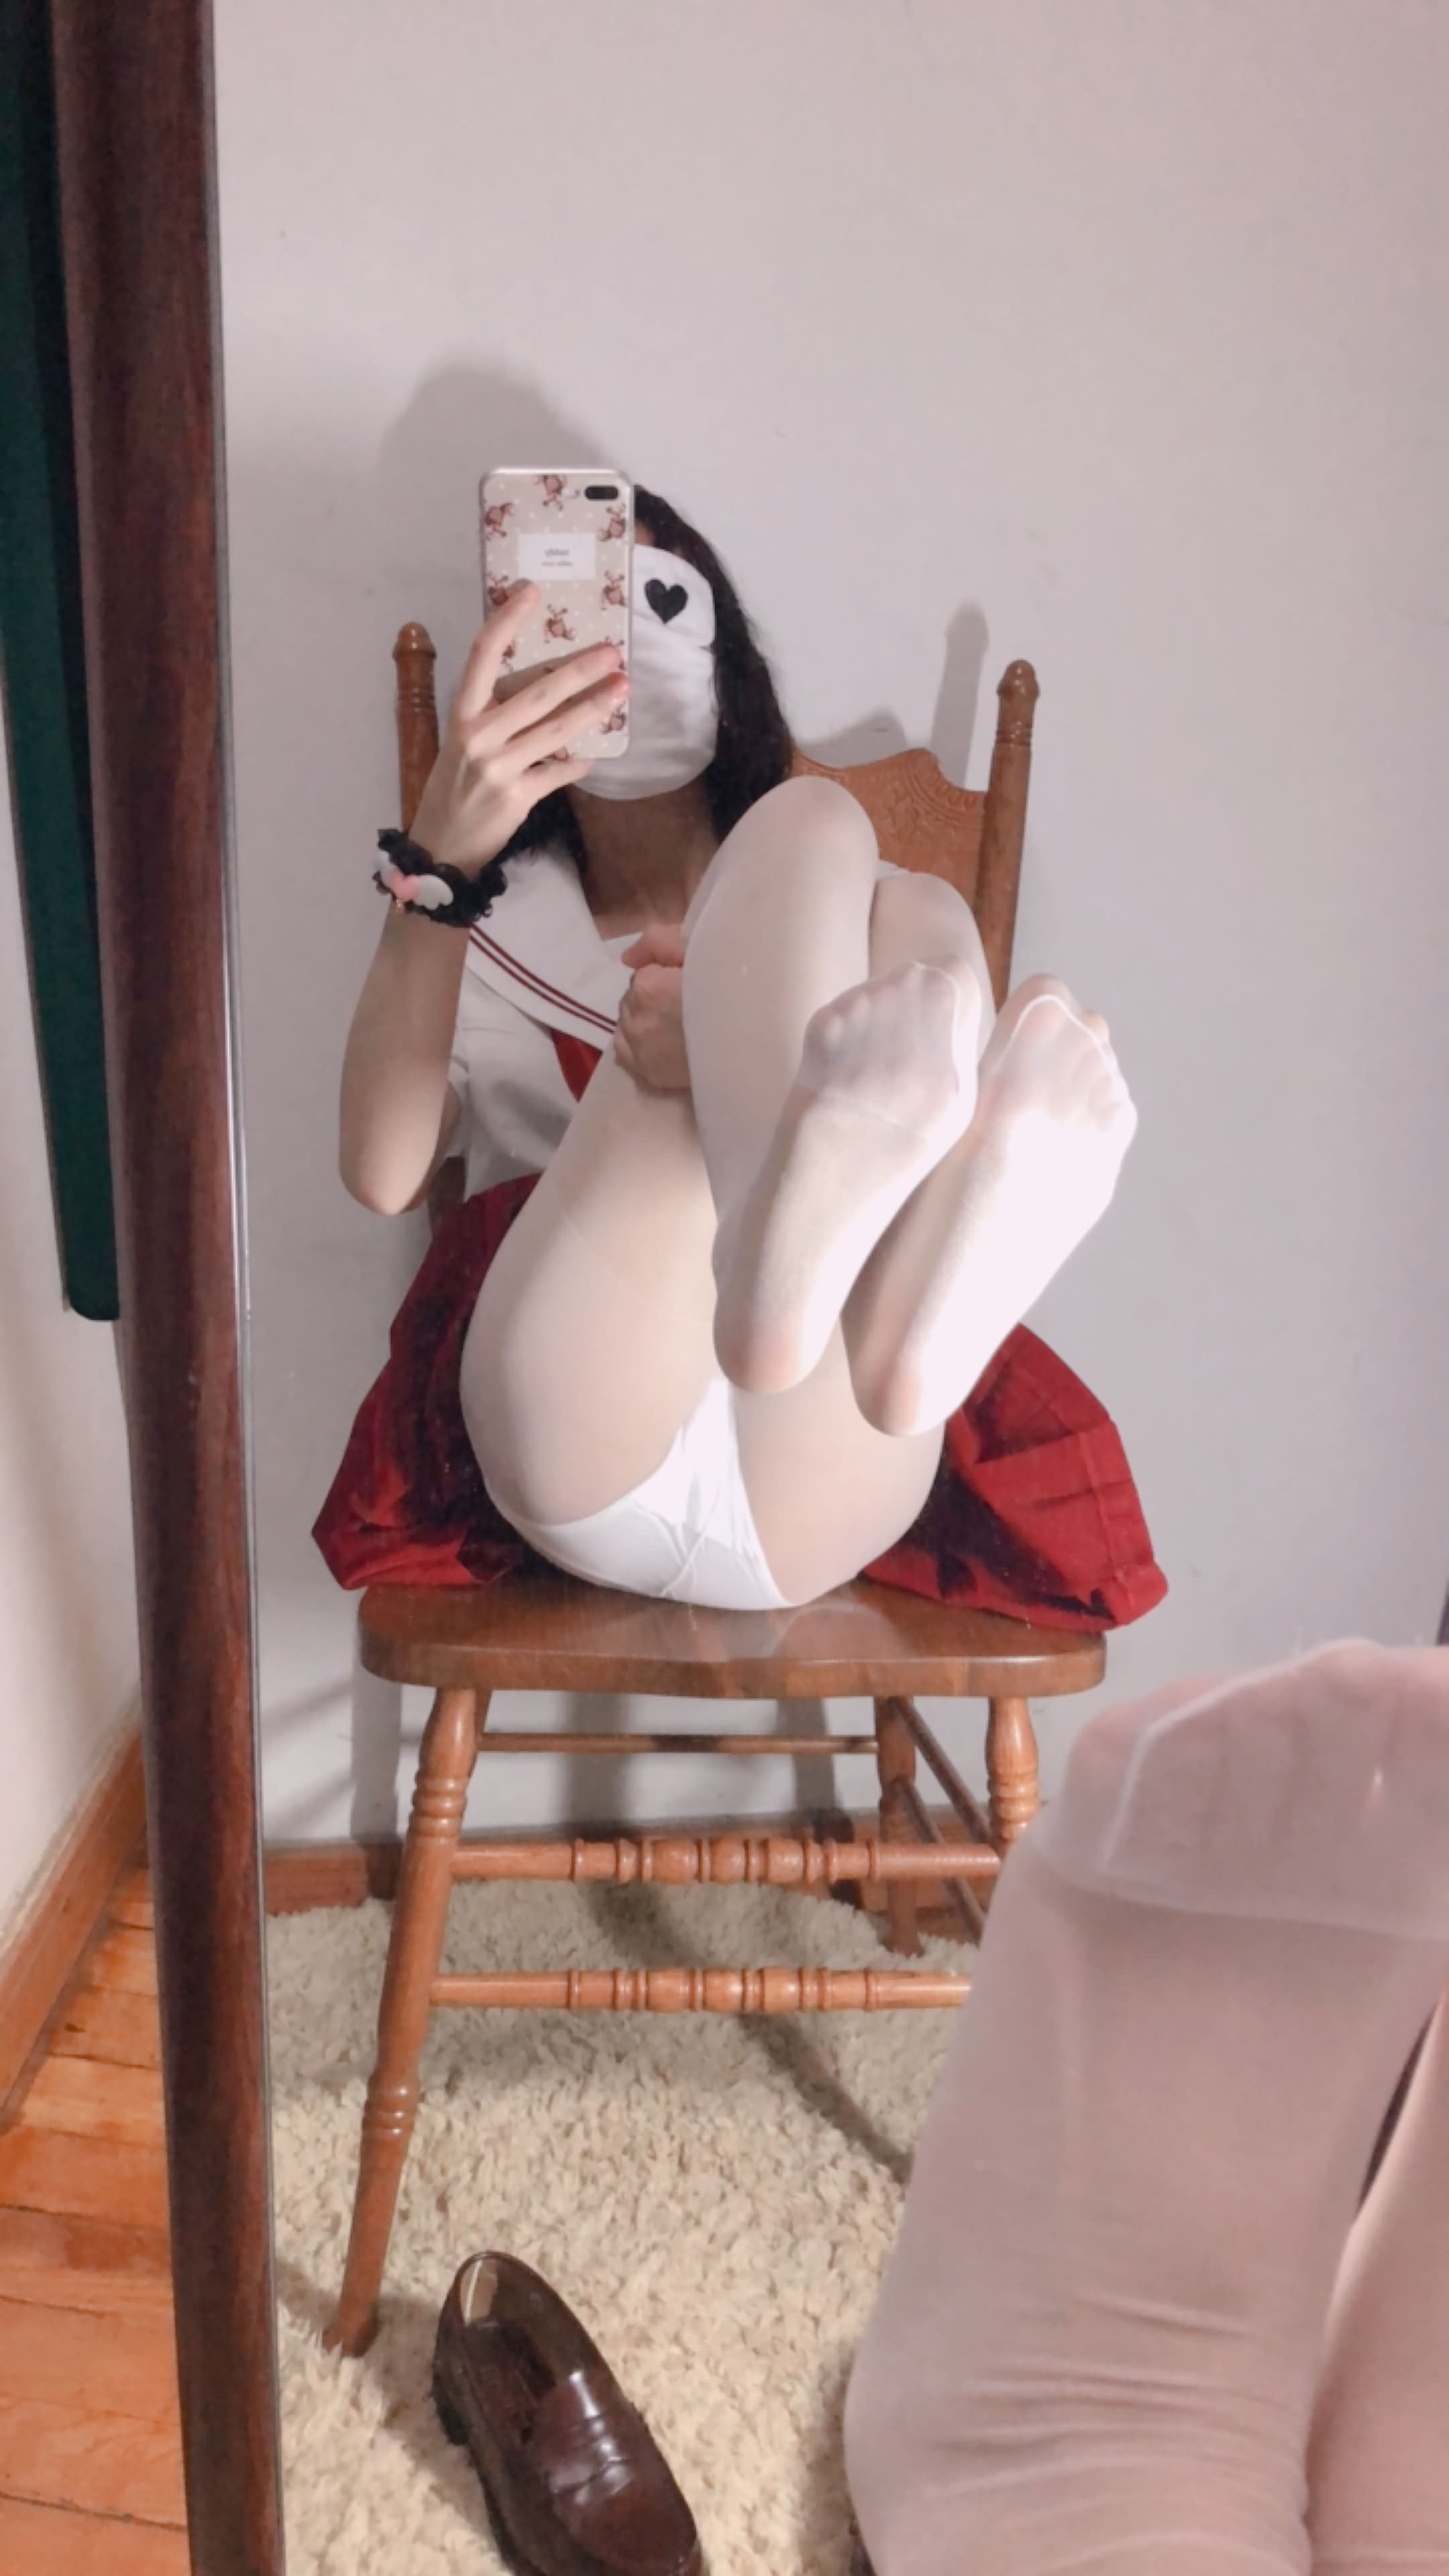 29 - Cosplay red JK uniform white stockings sweet pussy butt 小结巴-红色jk制服白丝 95P